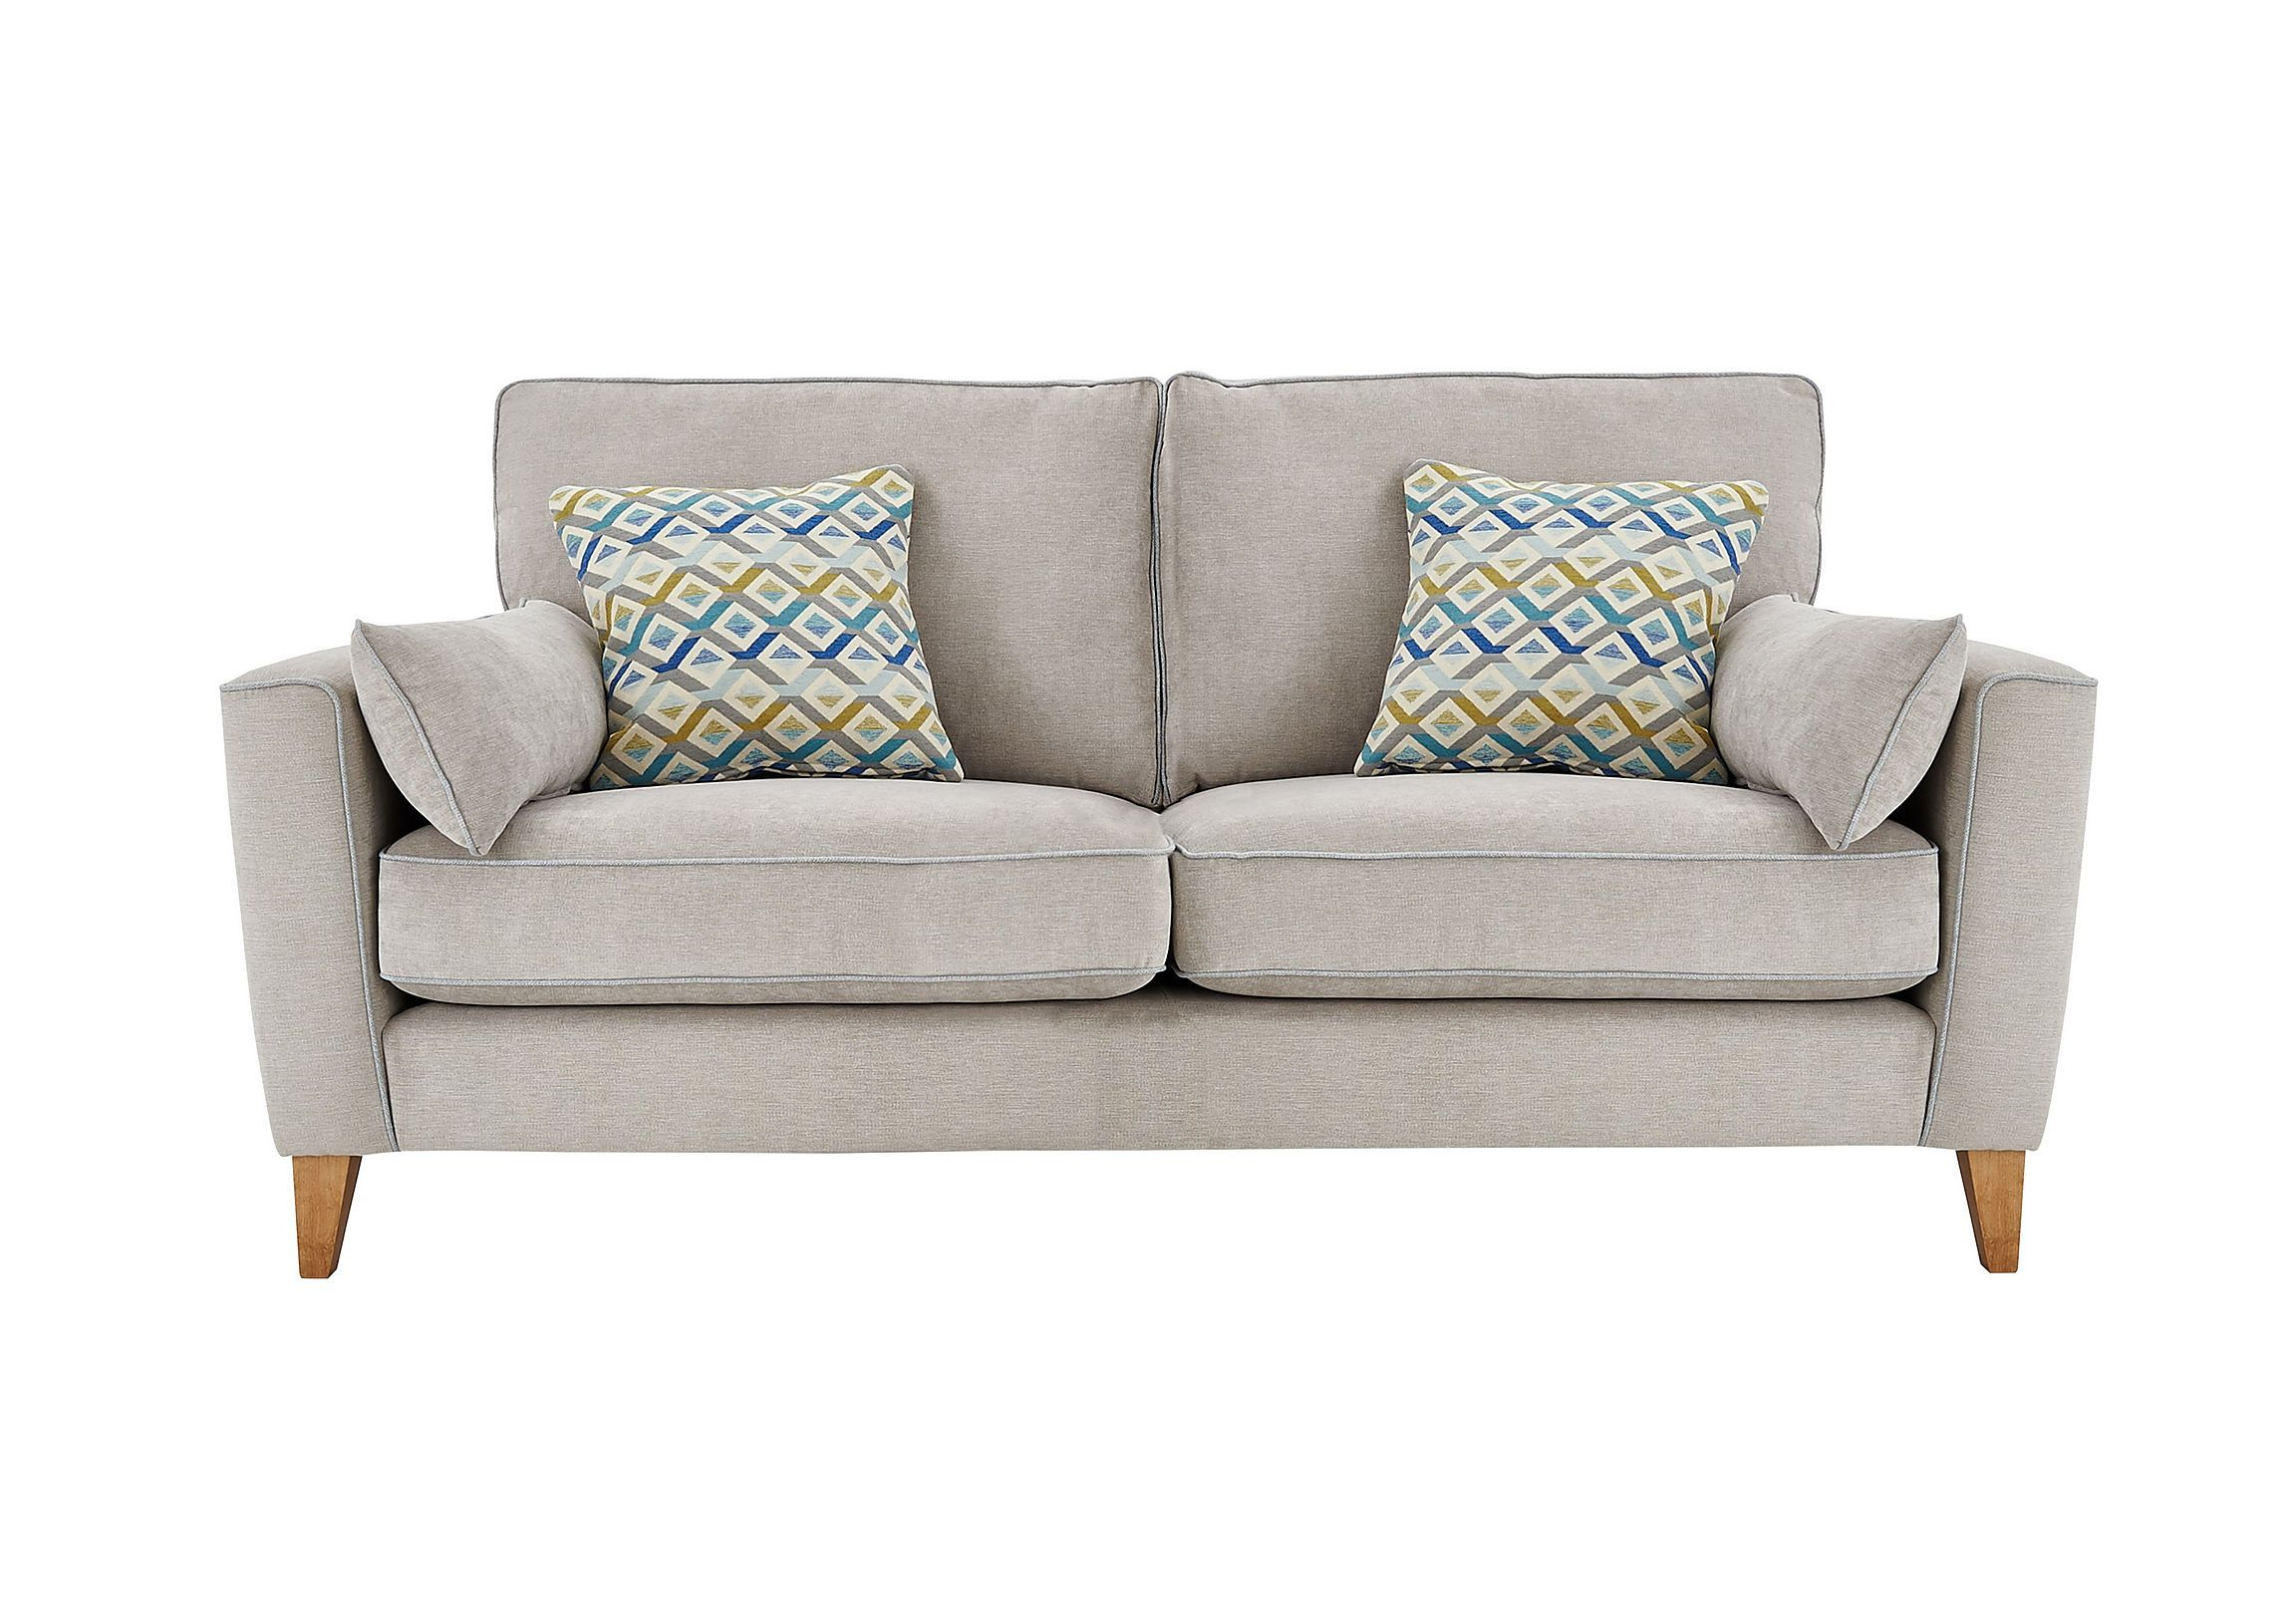 Clean Contemporary Scandi Style Compact Sofa Perfect For Smaller Es Soft Upholstery In Three